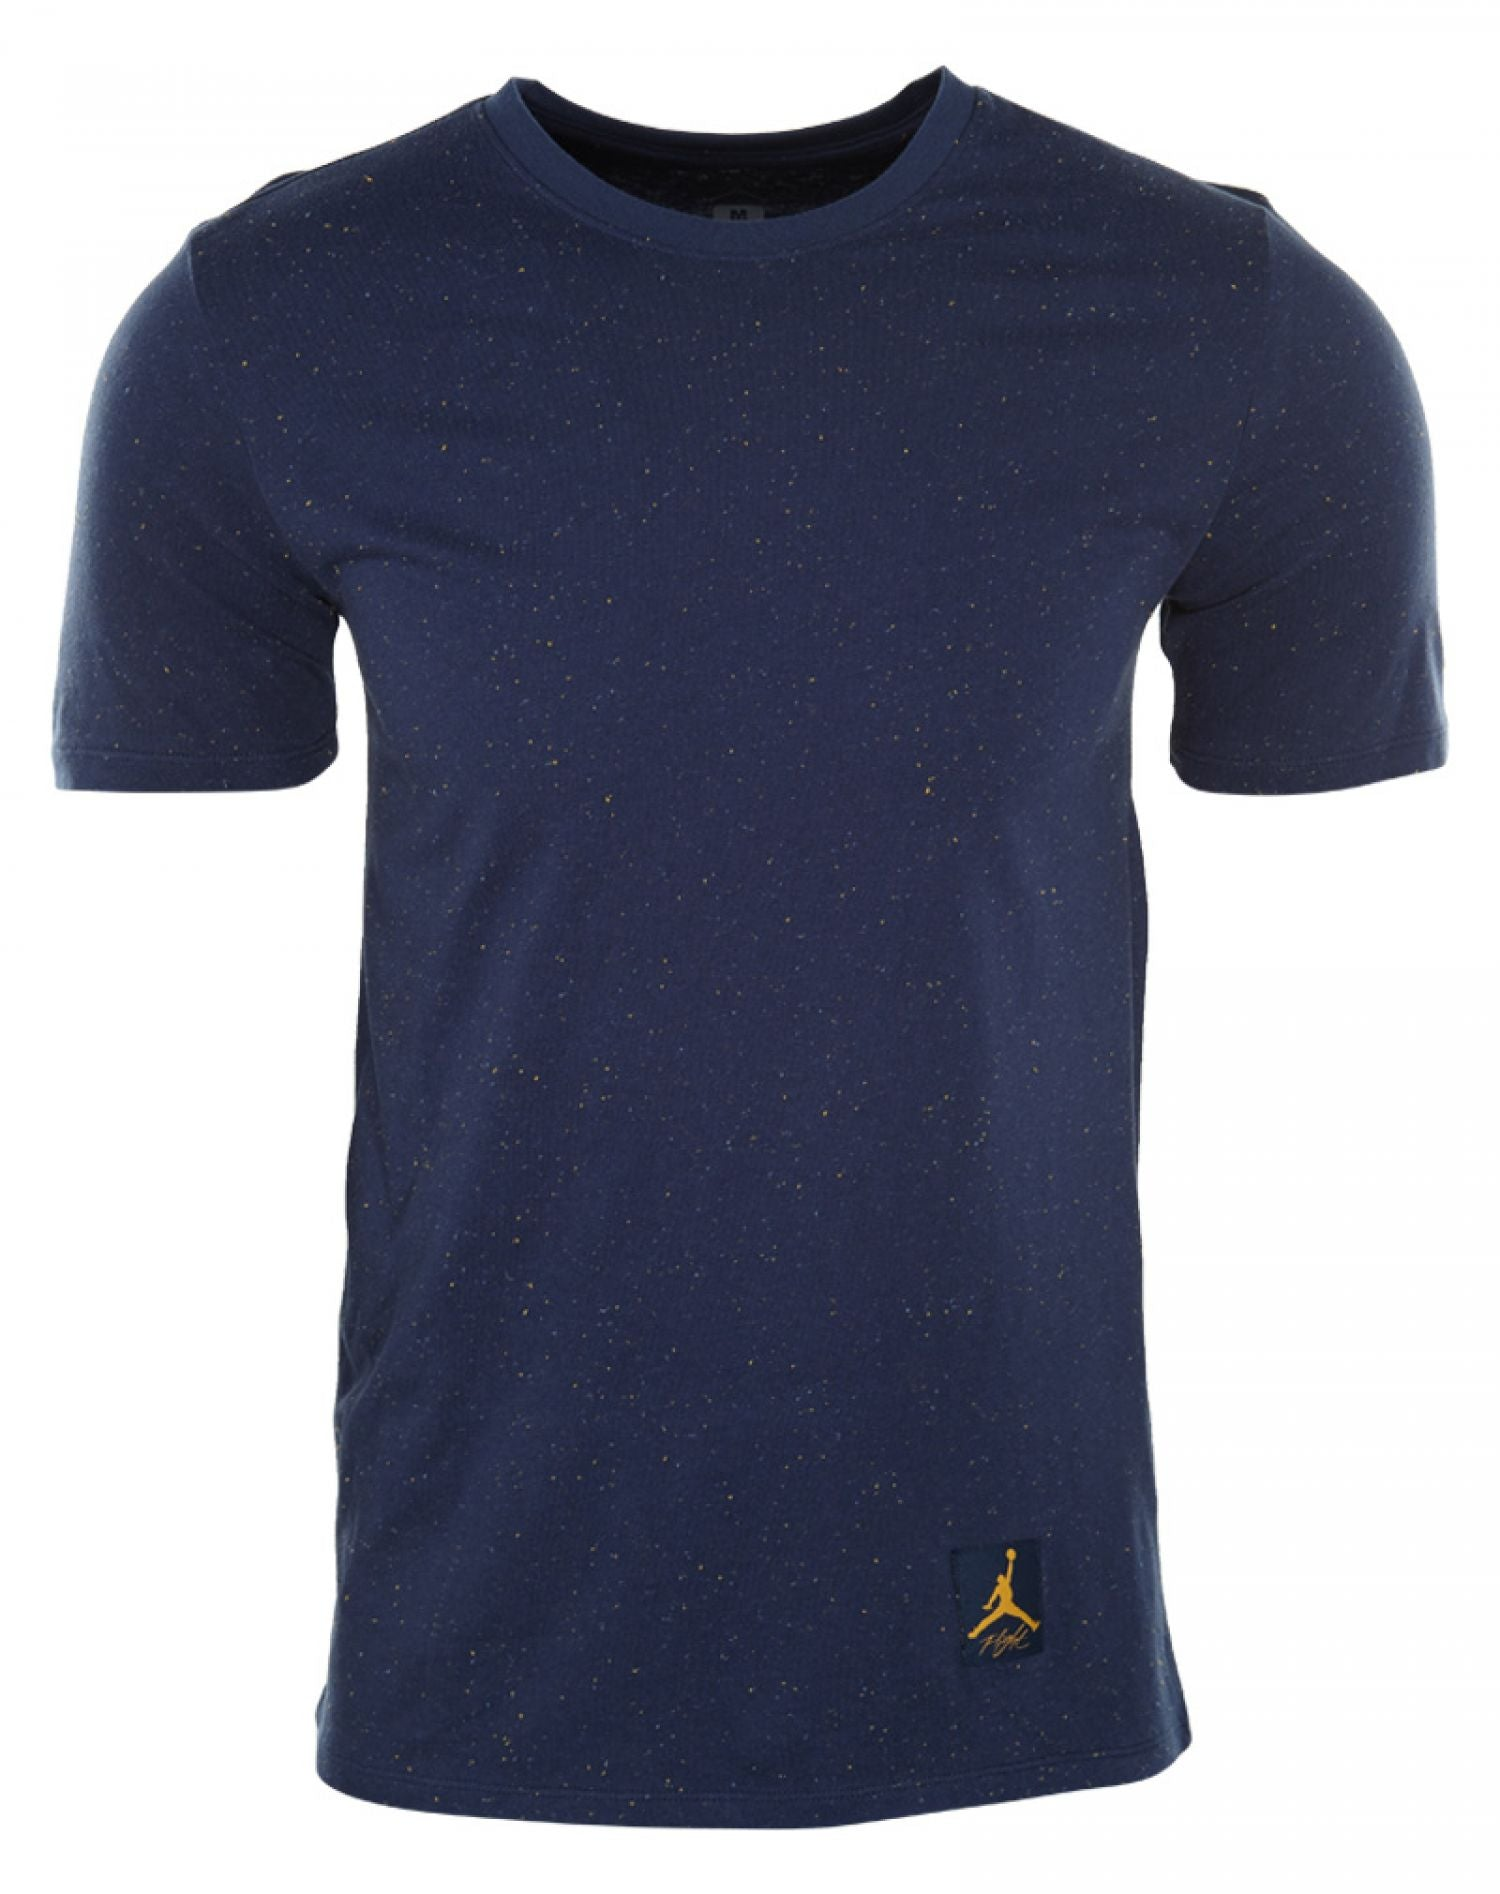 AIR JORDAN 4 SPECKLE SHIRT